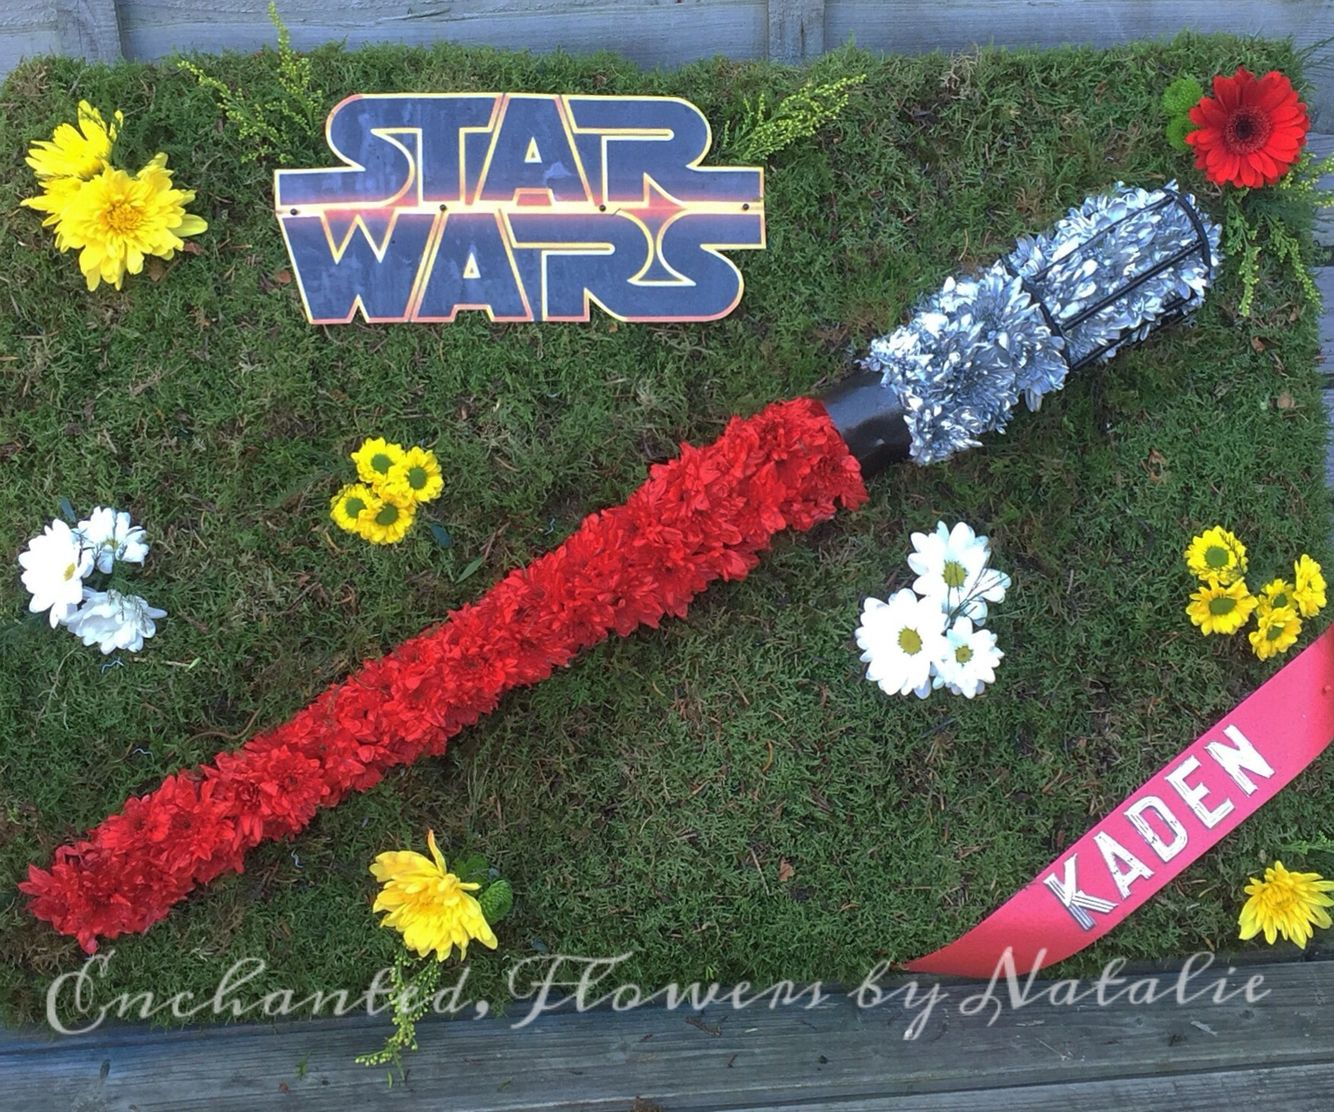 Star Wars Light Saber Floral Funeral Tribute Funeral Flowers Star